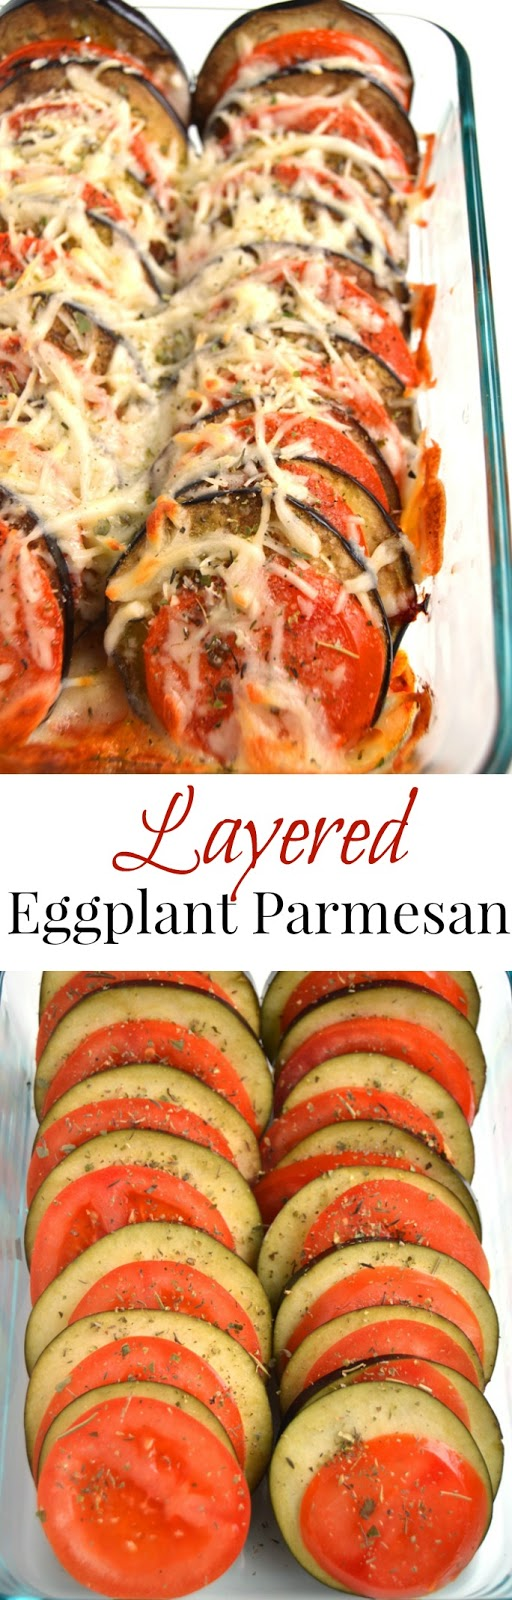 Layered Eggplant Parmesan is a healthier and simpler take on the traditional recipe with stacked tomatoes and eggplant baked with Parmesan and mozzarella cheese, garlic and Italian spices! www.nutritionistreviews.com